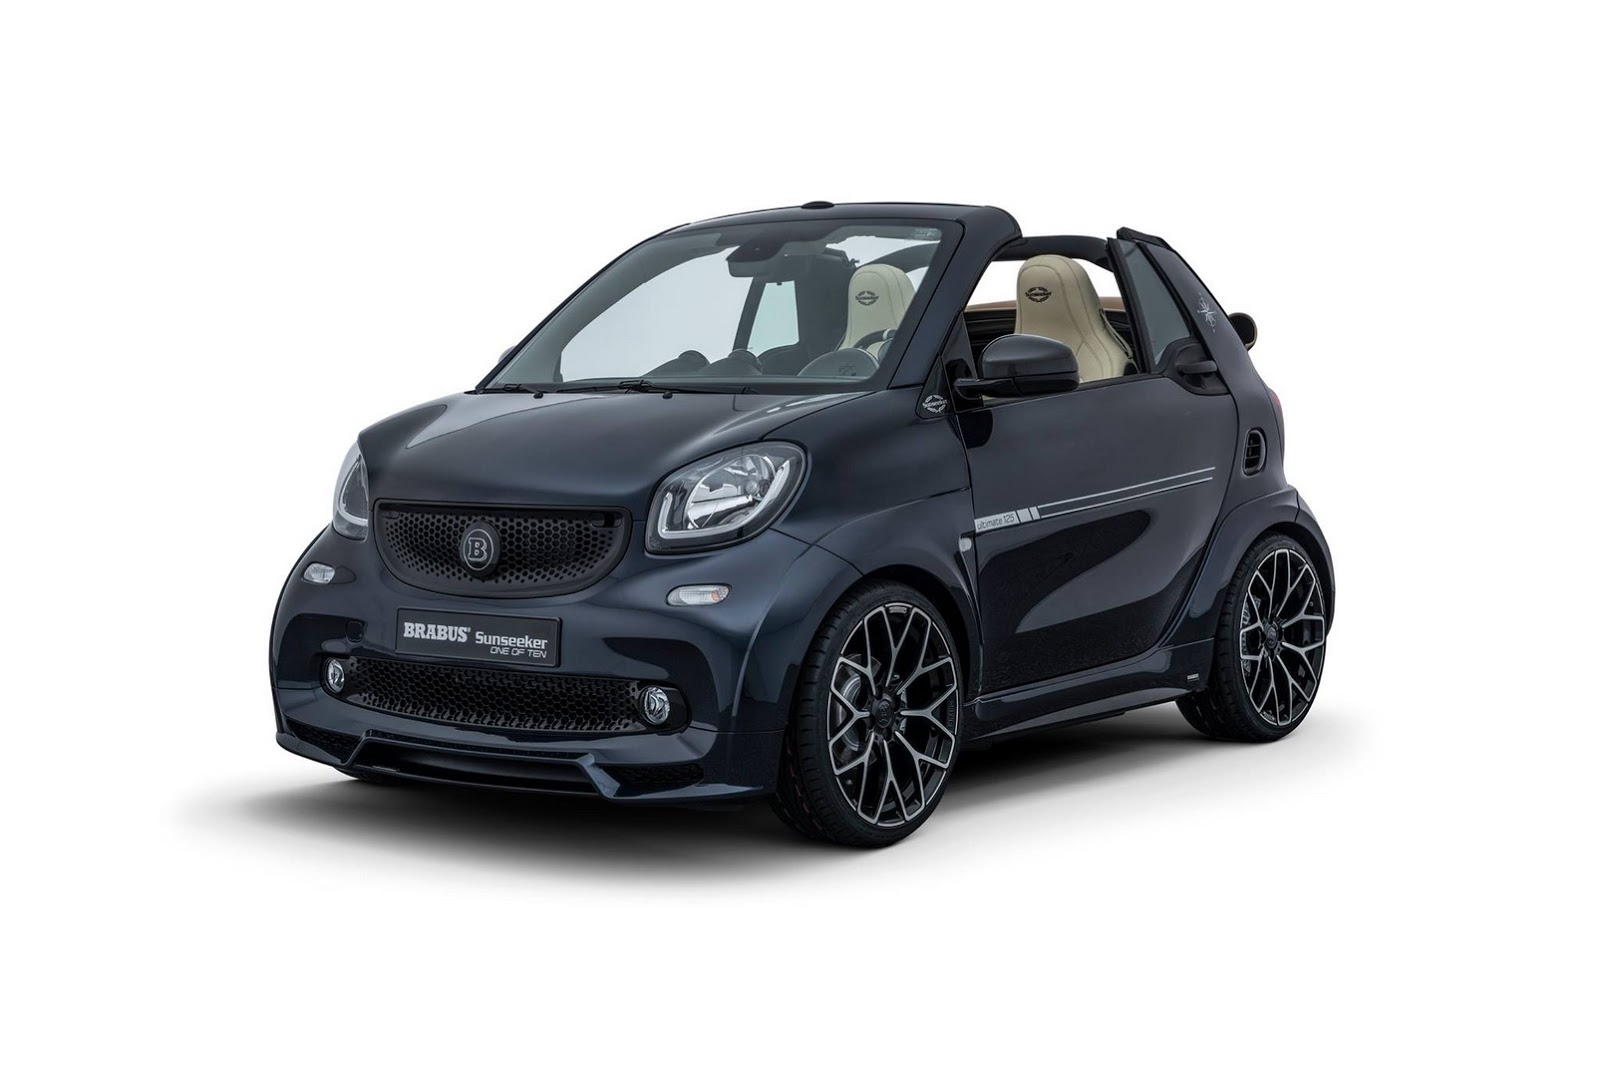 brabus-smart-fortwo-125-sunseeker-1